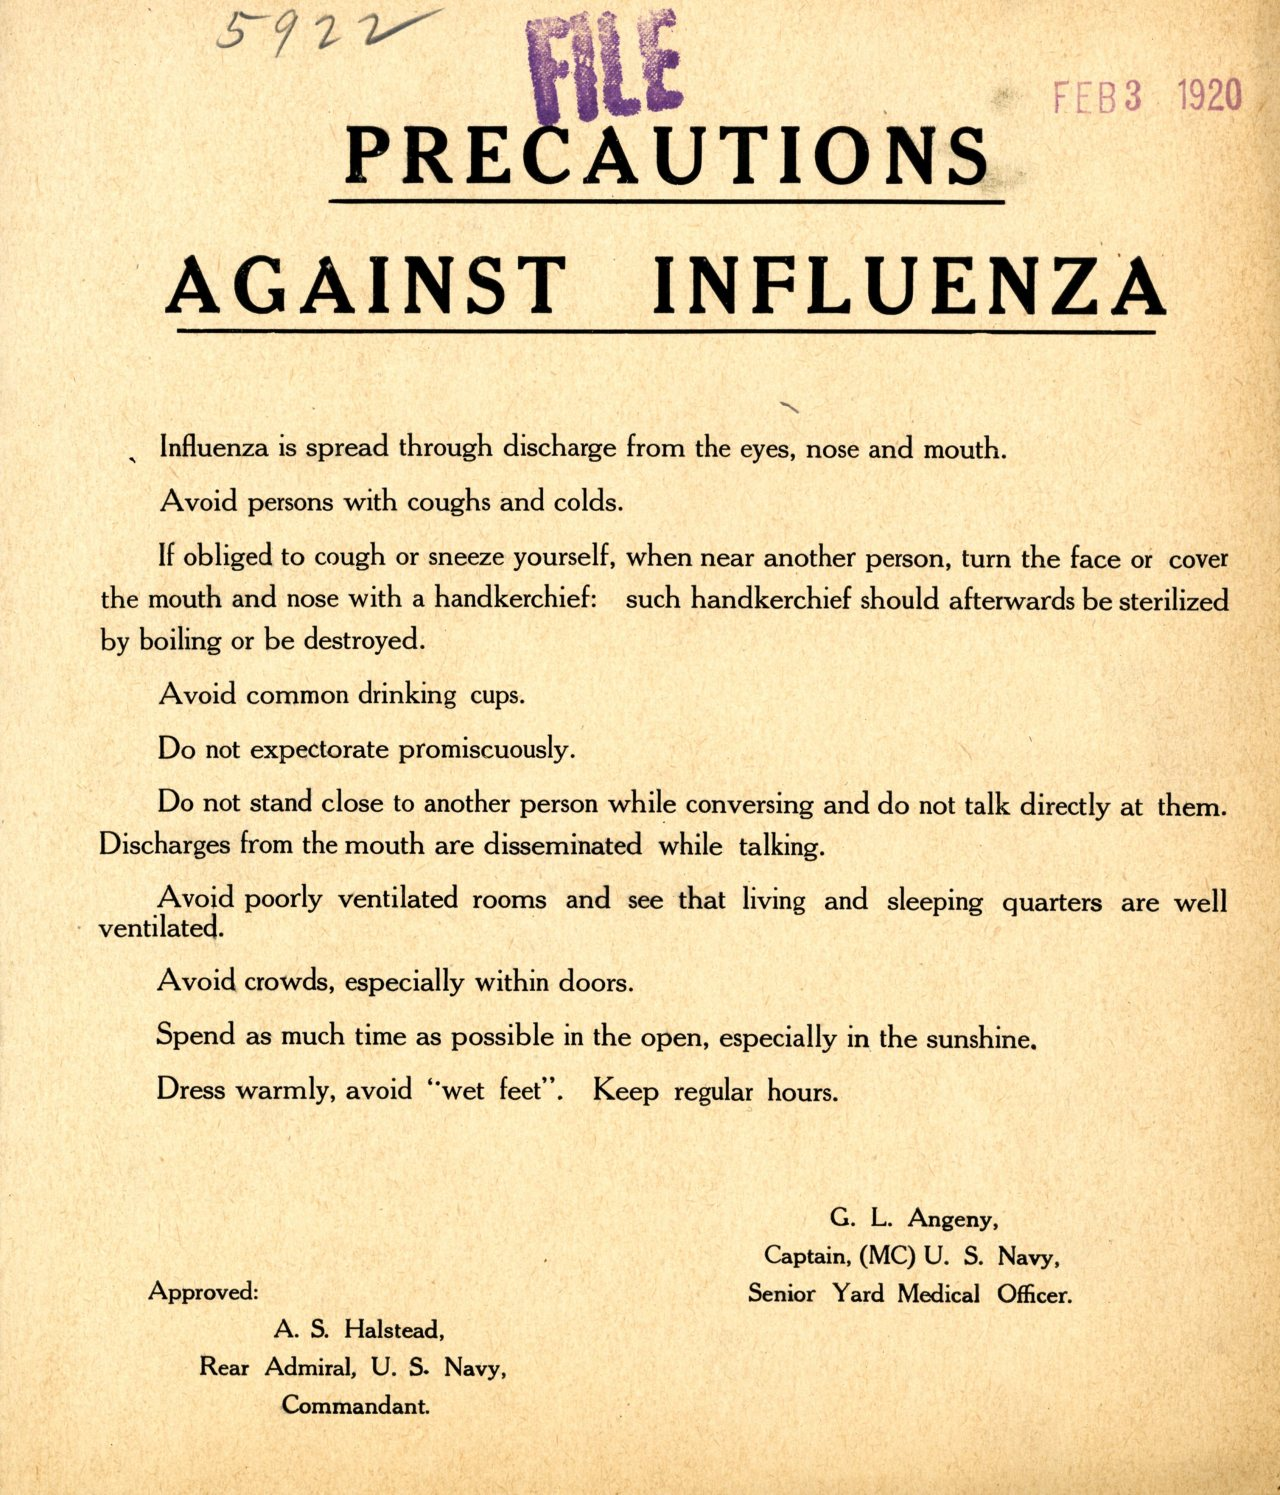 It's still Flu Season, be careful out there!   Precautions against Influenza, 02/03/1920